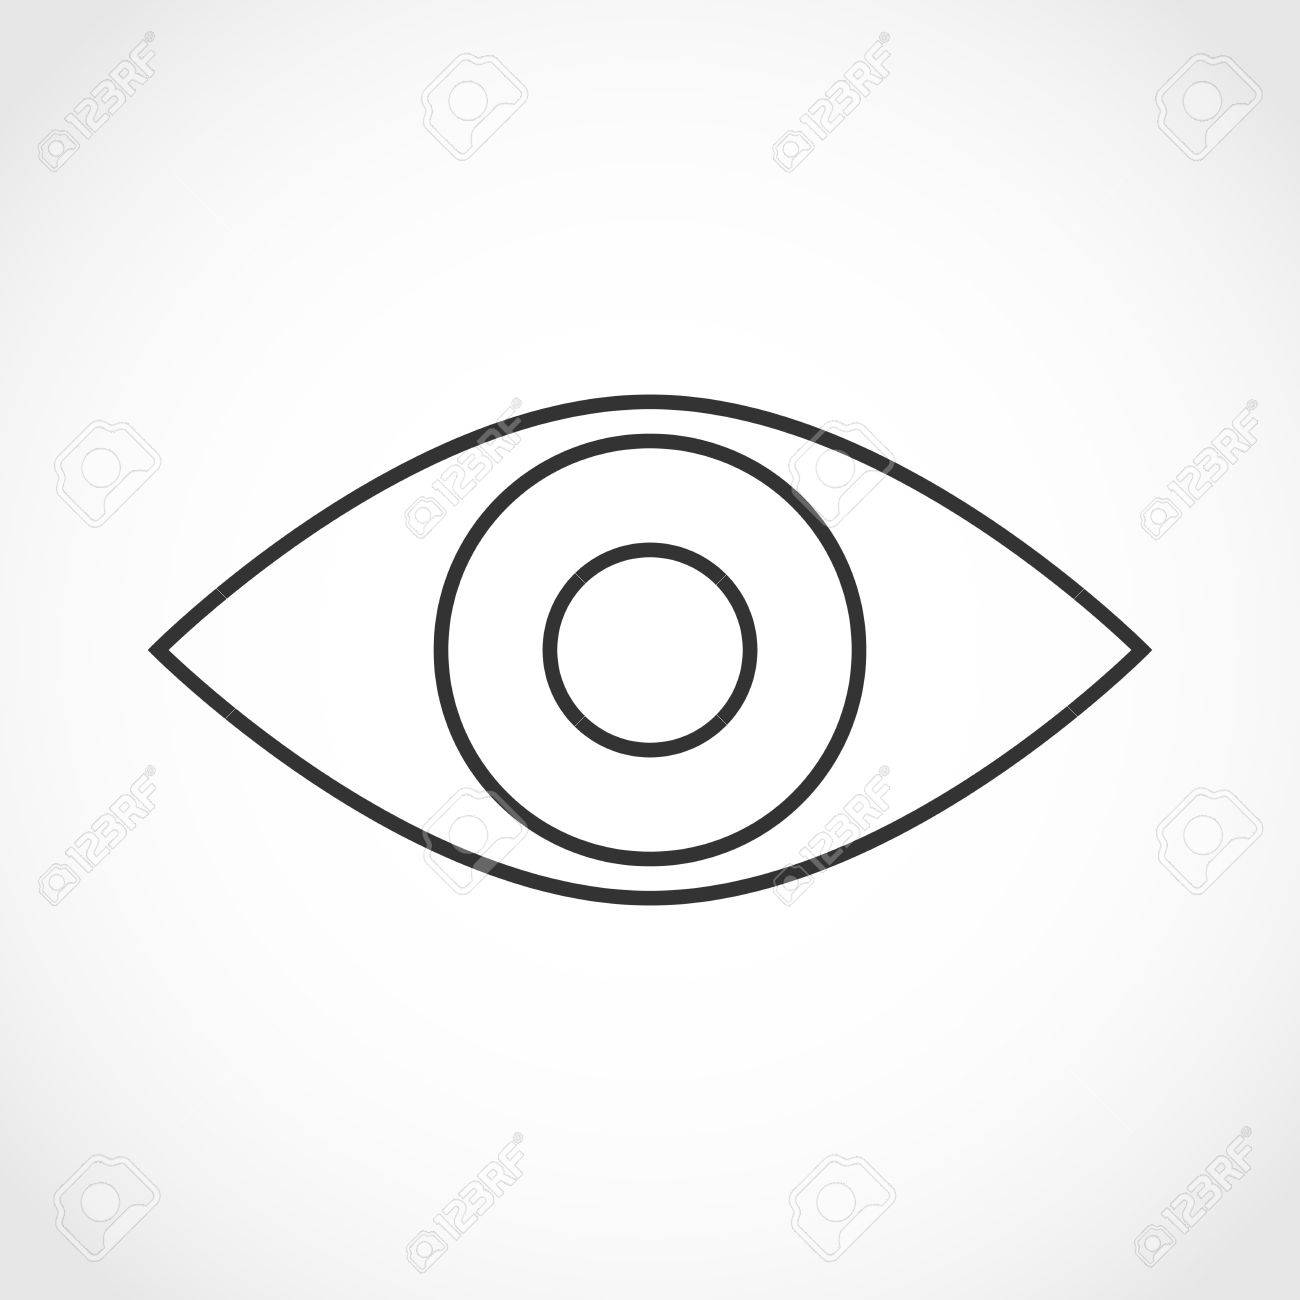 simple human eye diagram daisy 880 parts contour of the on white background icon vector illustration